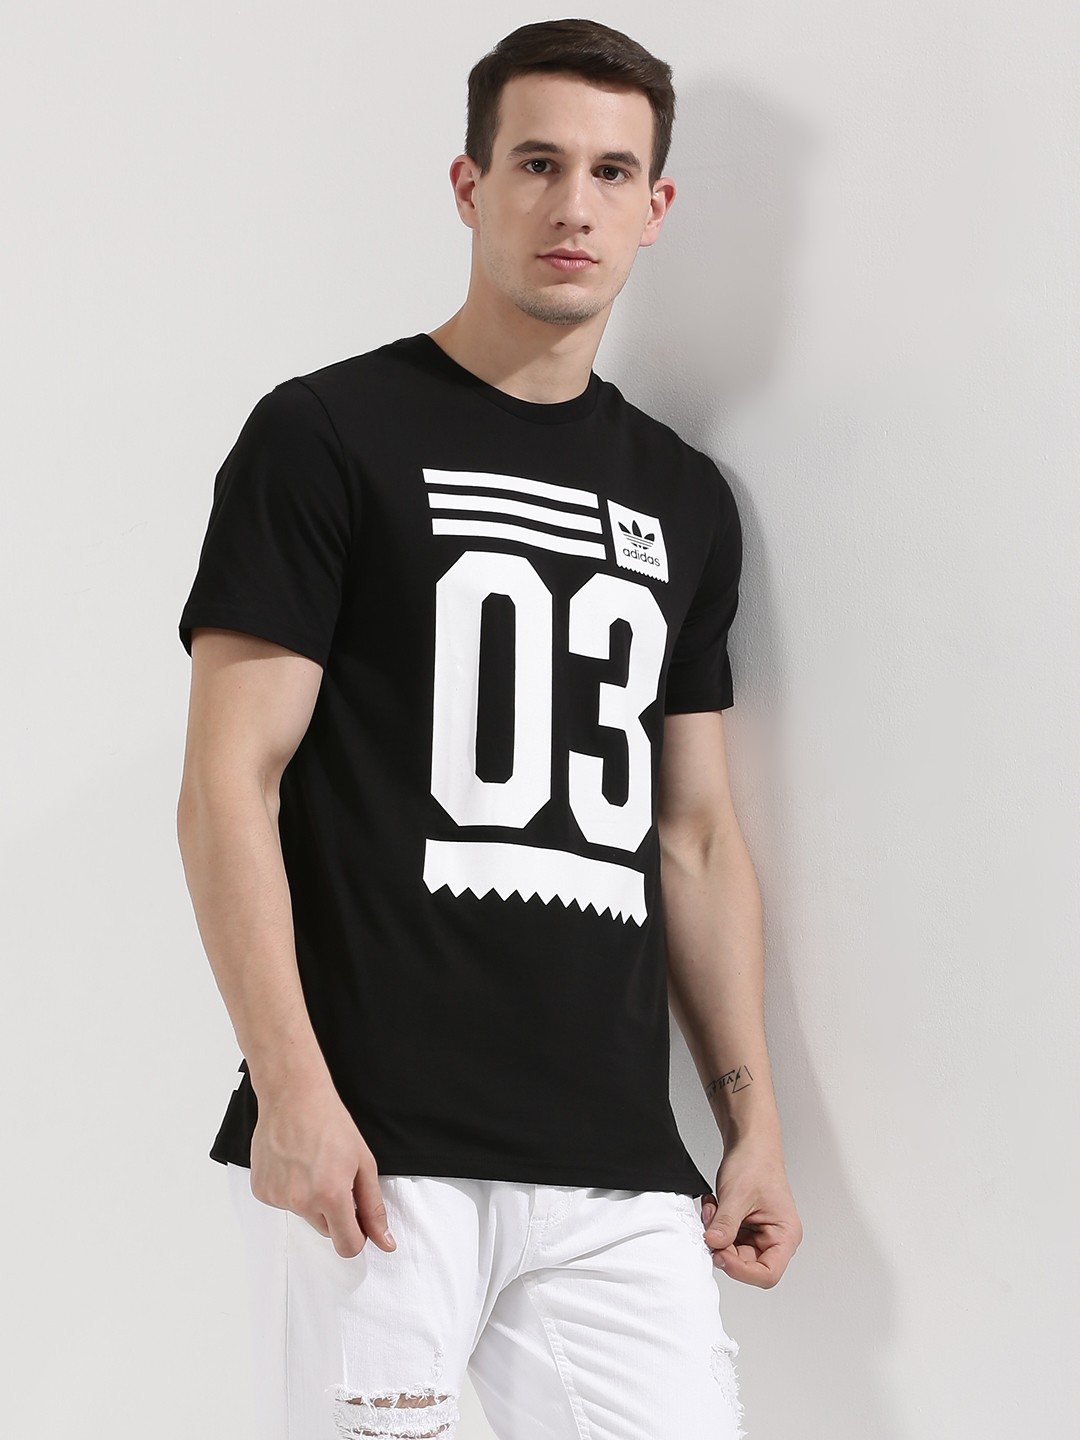 Buy Adidas Originals Varsity Graphic T Shirt For Men Men